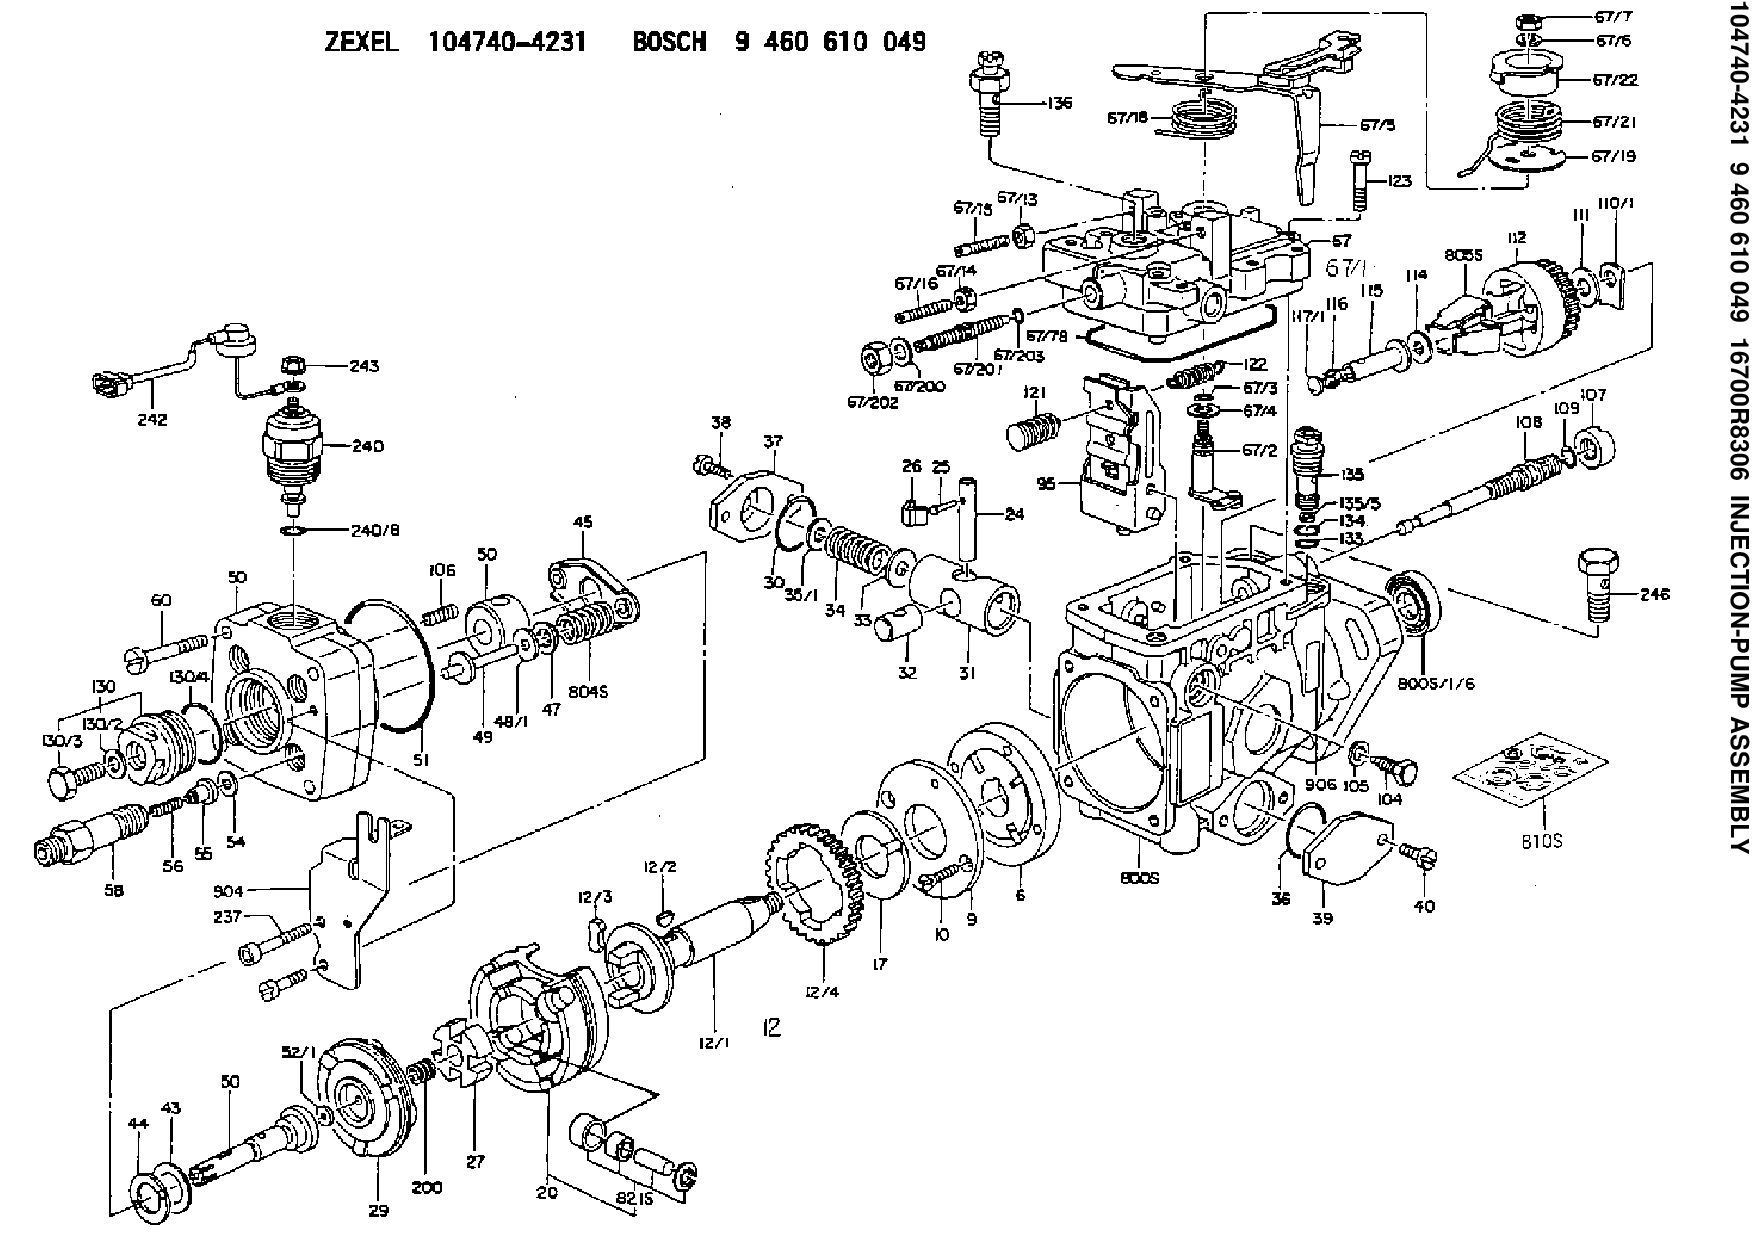 Diagrams Wiring Zexel Fuel Injection Pump Parts